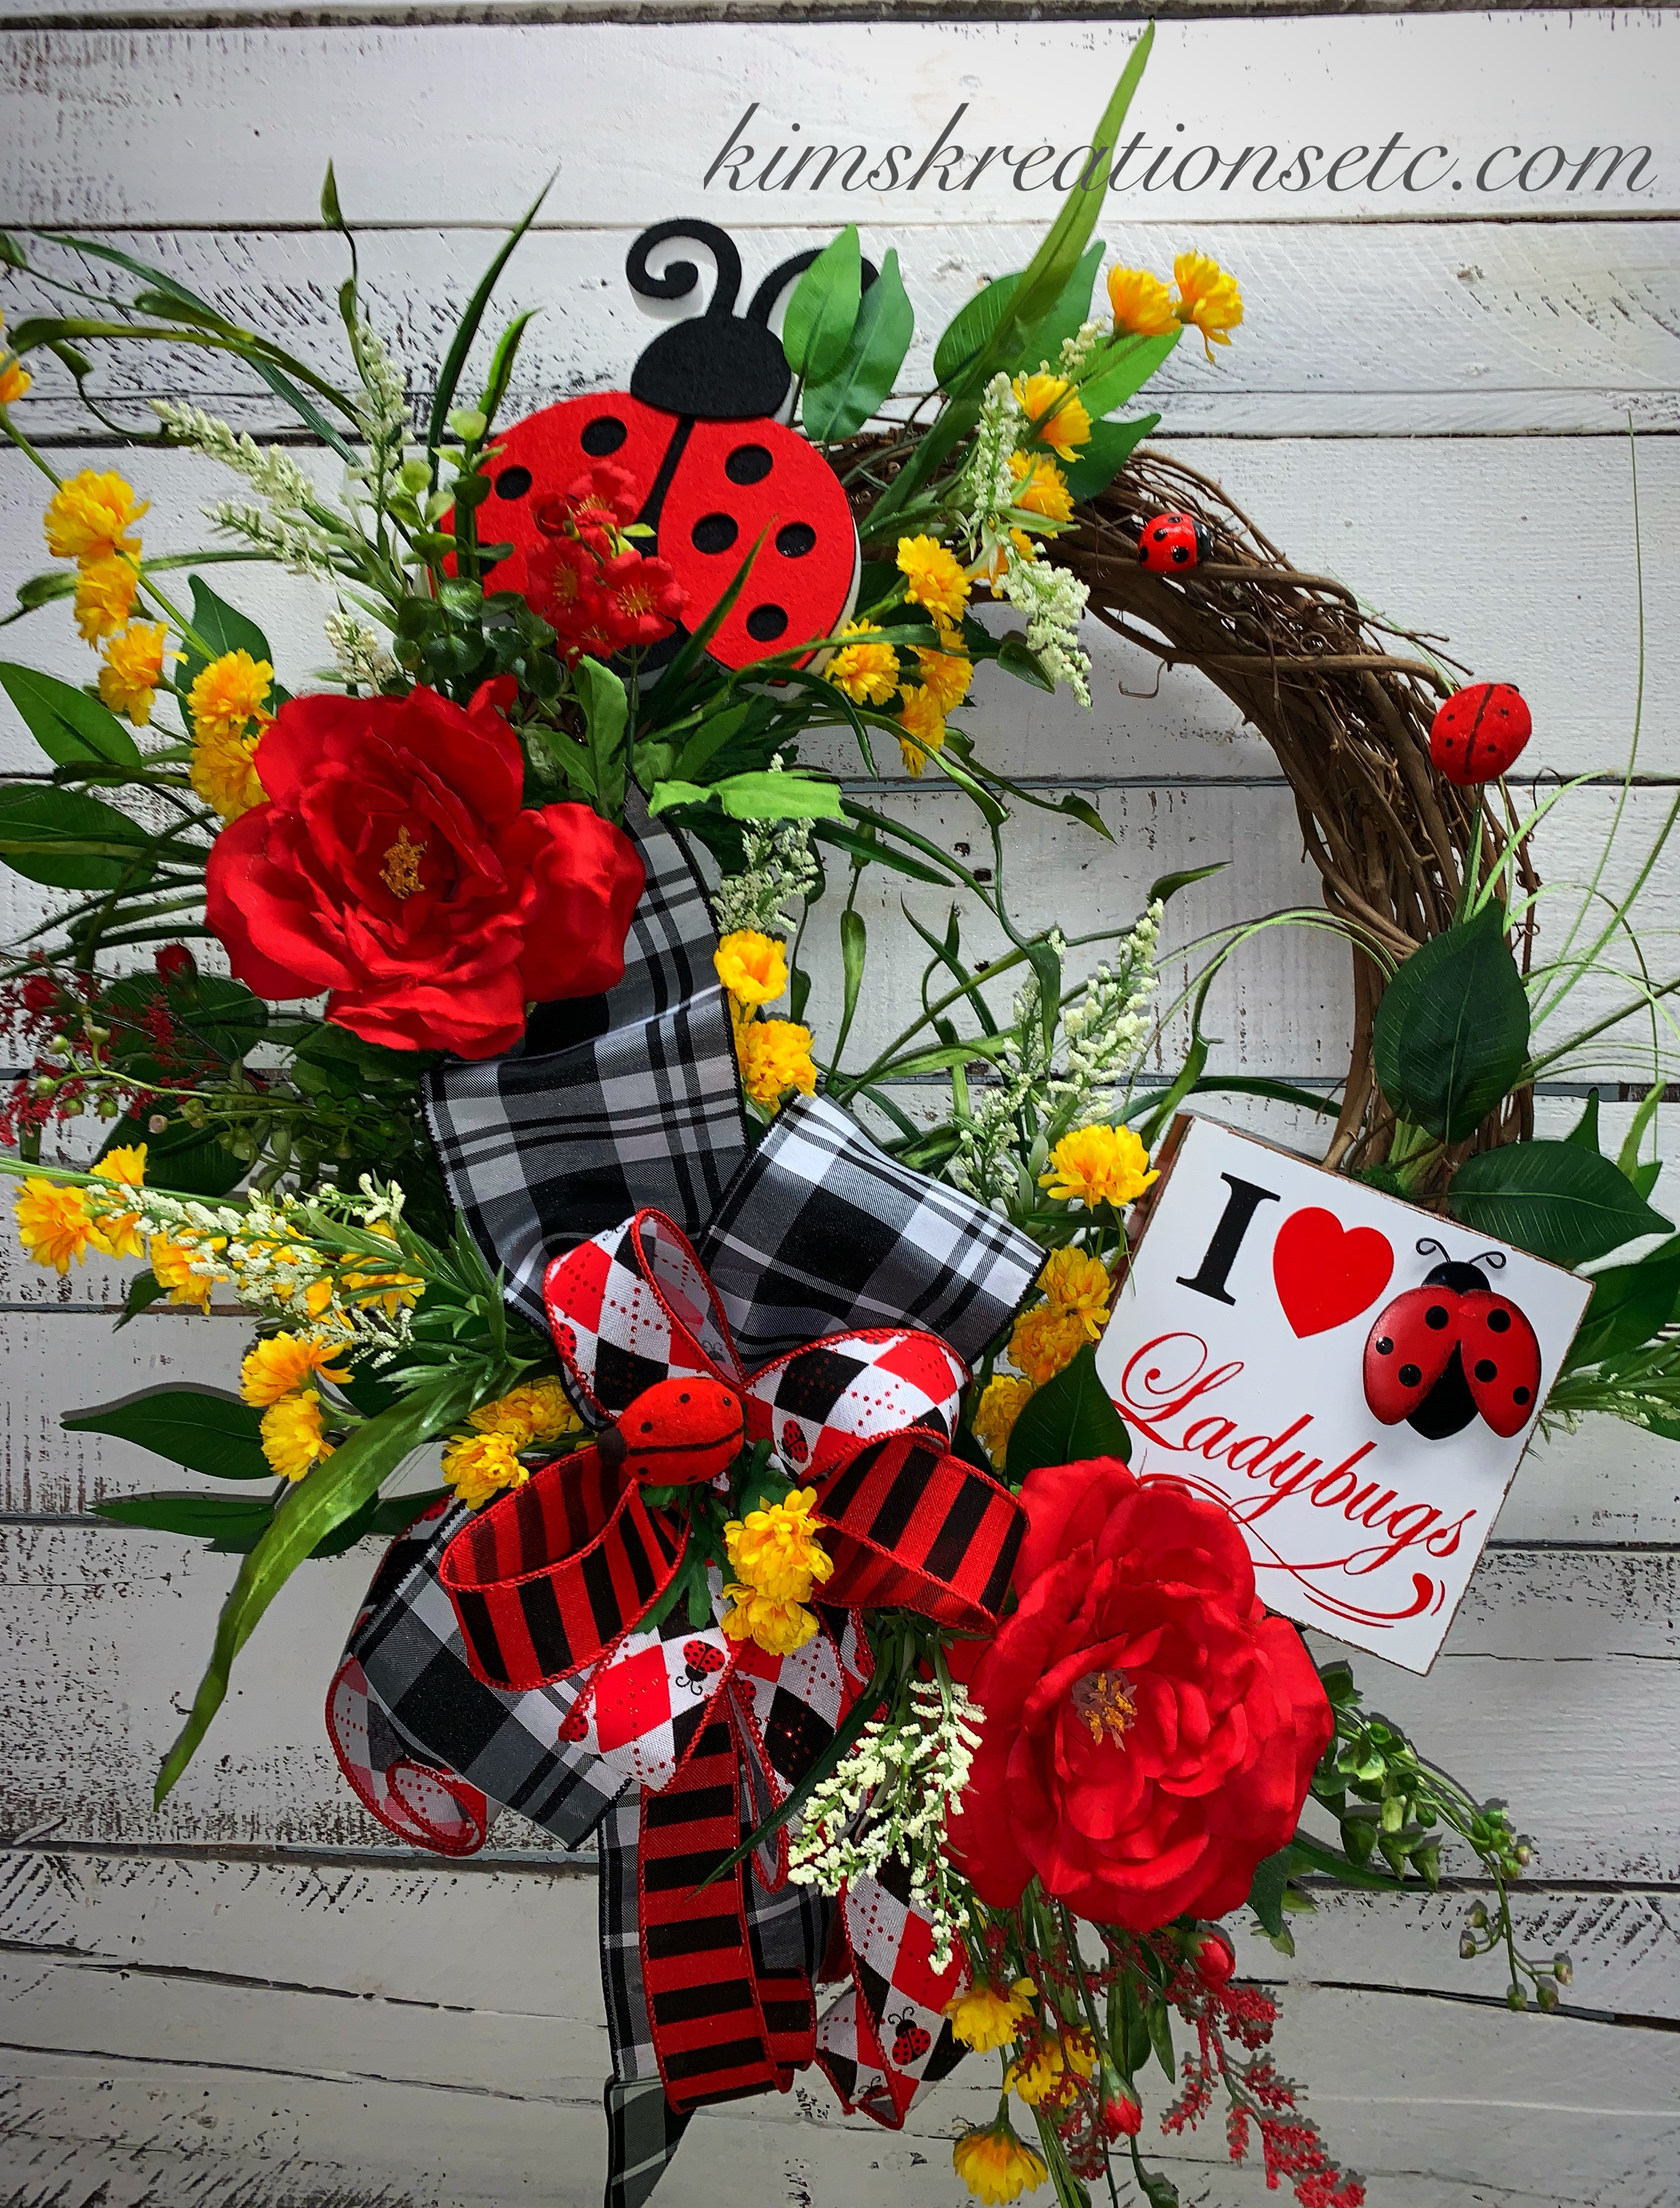 Ladybug Wreath Summer Wreath Summer Wreath With Ladybugs Summer Wreath For Front Door Red Yellow Beautiful Summer Wreath Summer Decor Outdoor Decor Home Decor Hand Made Wreaths Wreaths Wreaths For Sale